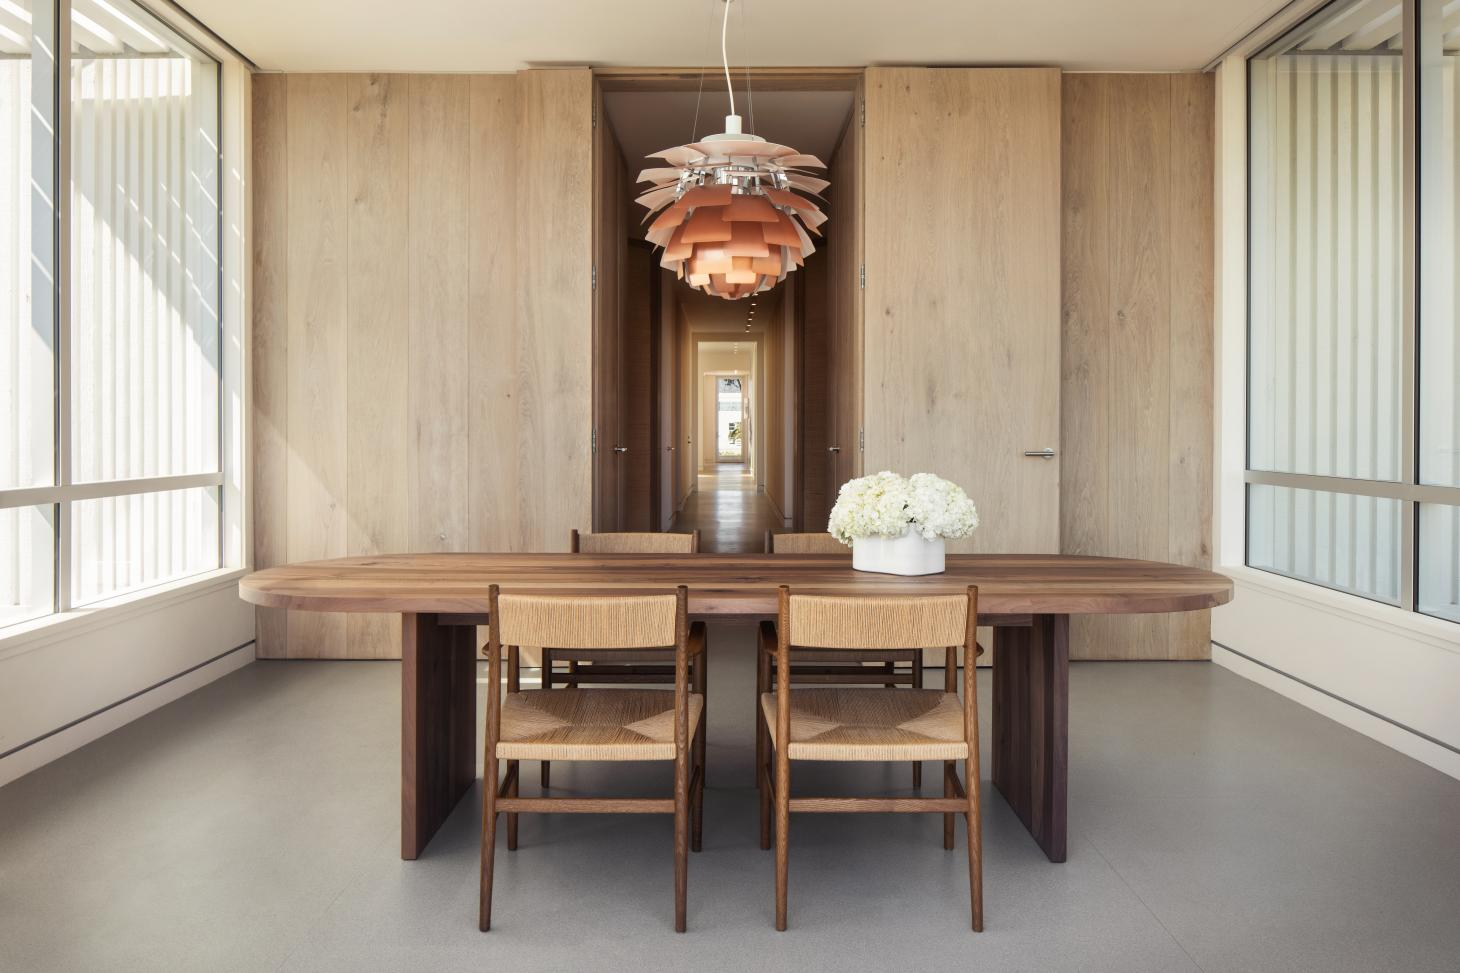 donum estate's donum house by David thulstrup picture featuring one of the wine tasting areas